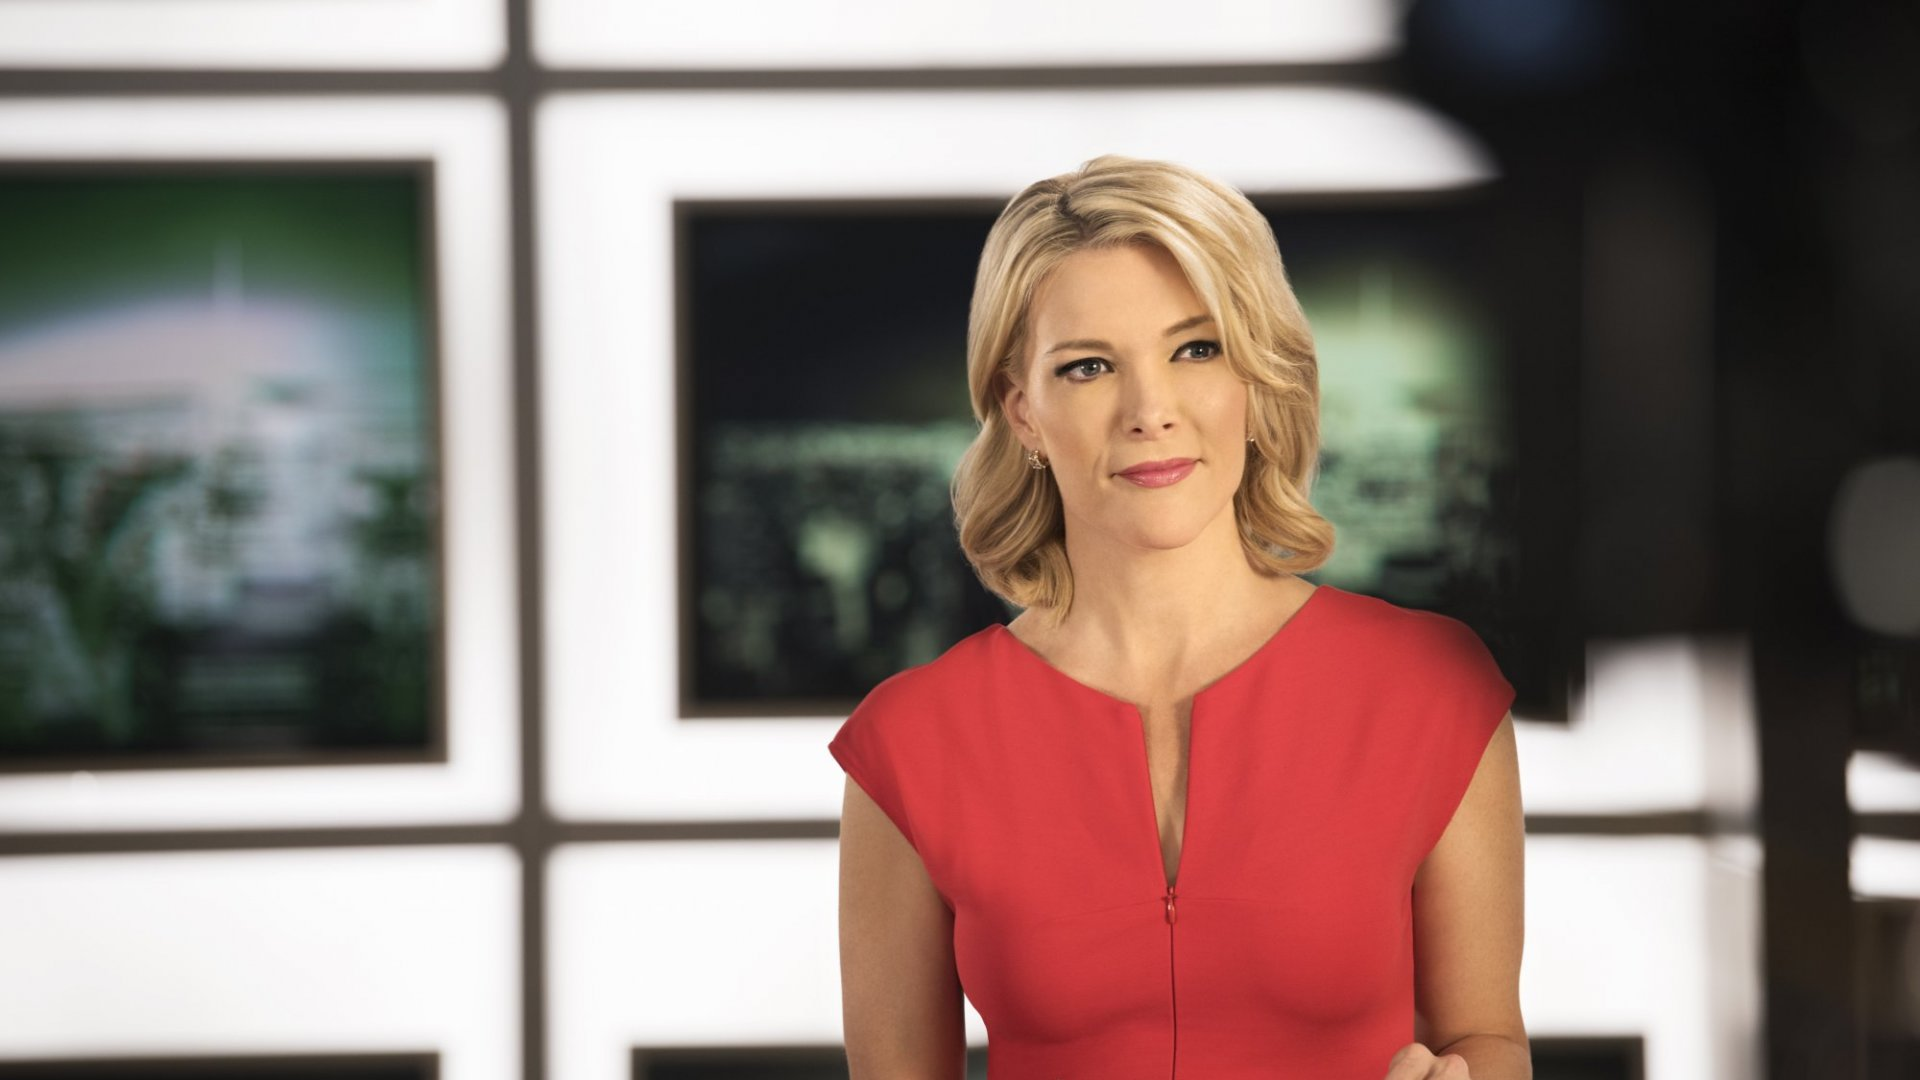 Let's Just All Shut Up About Megyn Kelly's Clothes